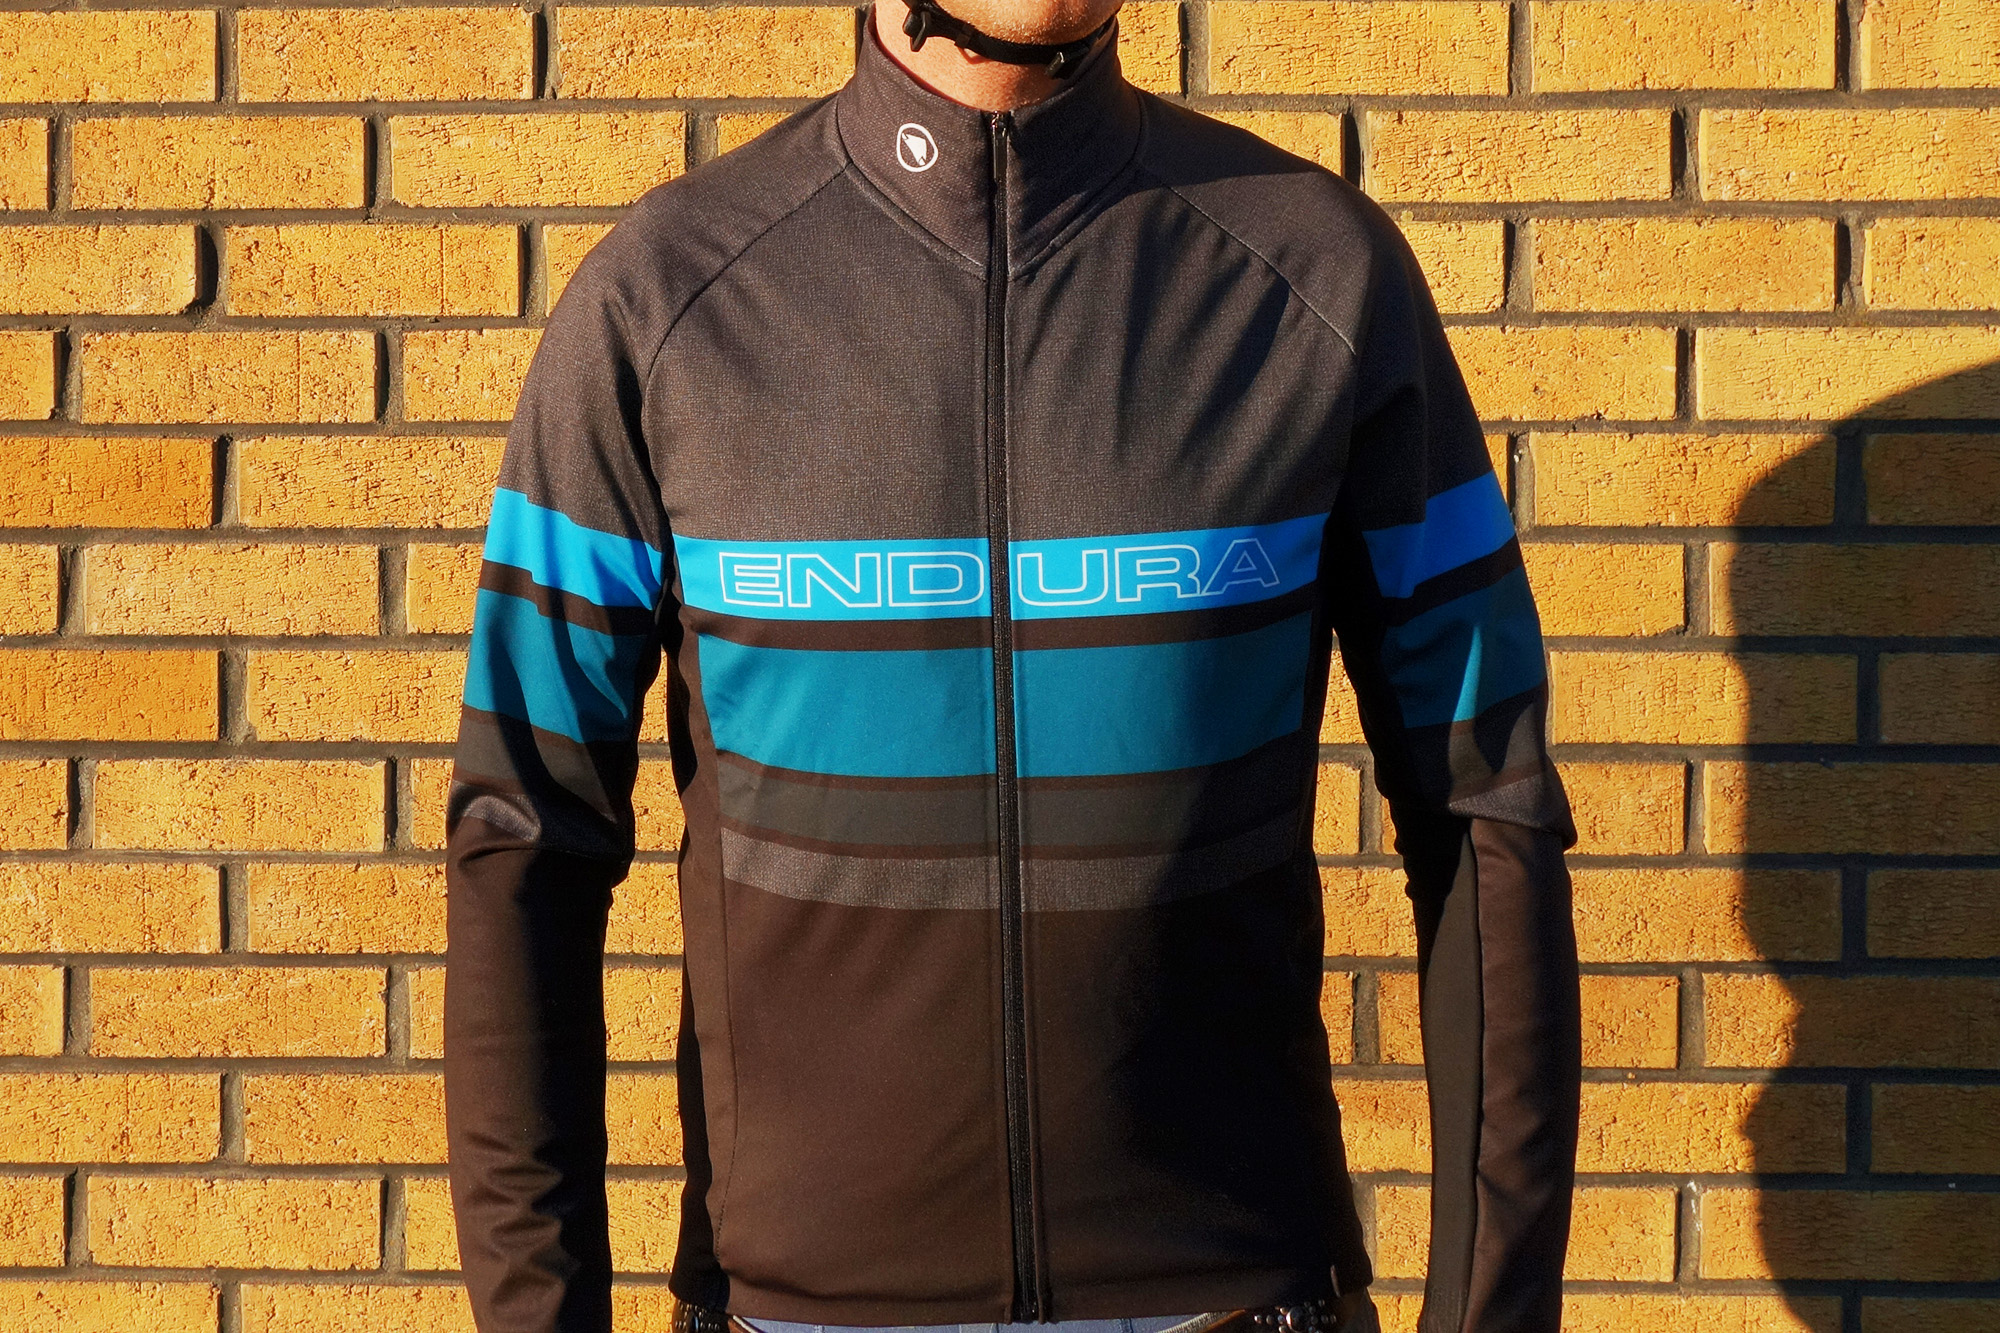 Endura Pro SL HC Windproof jacket